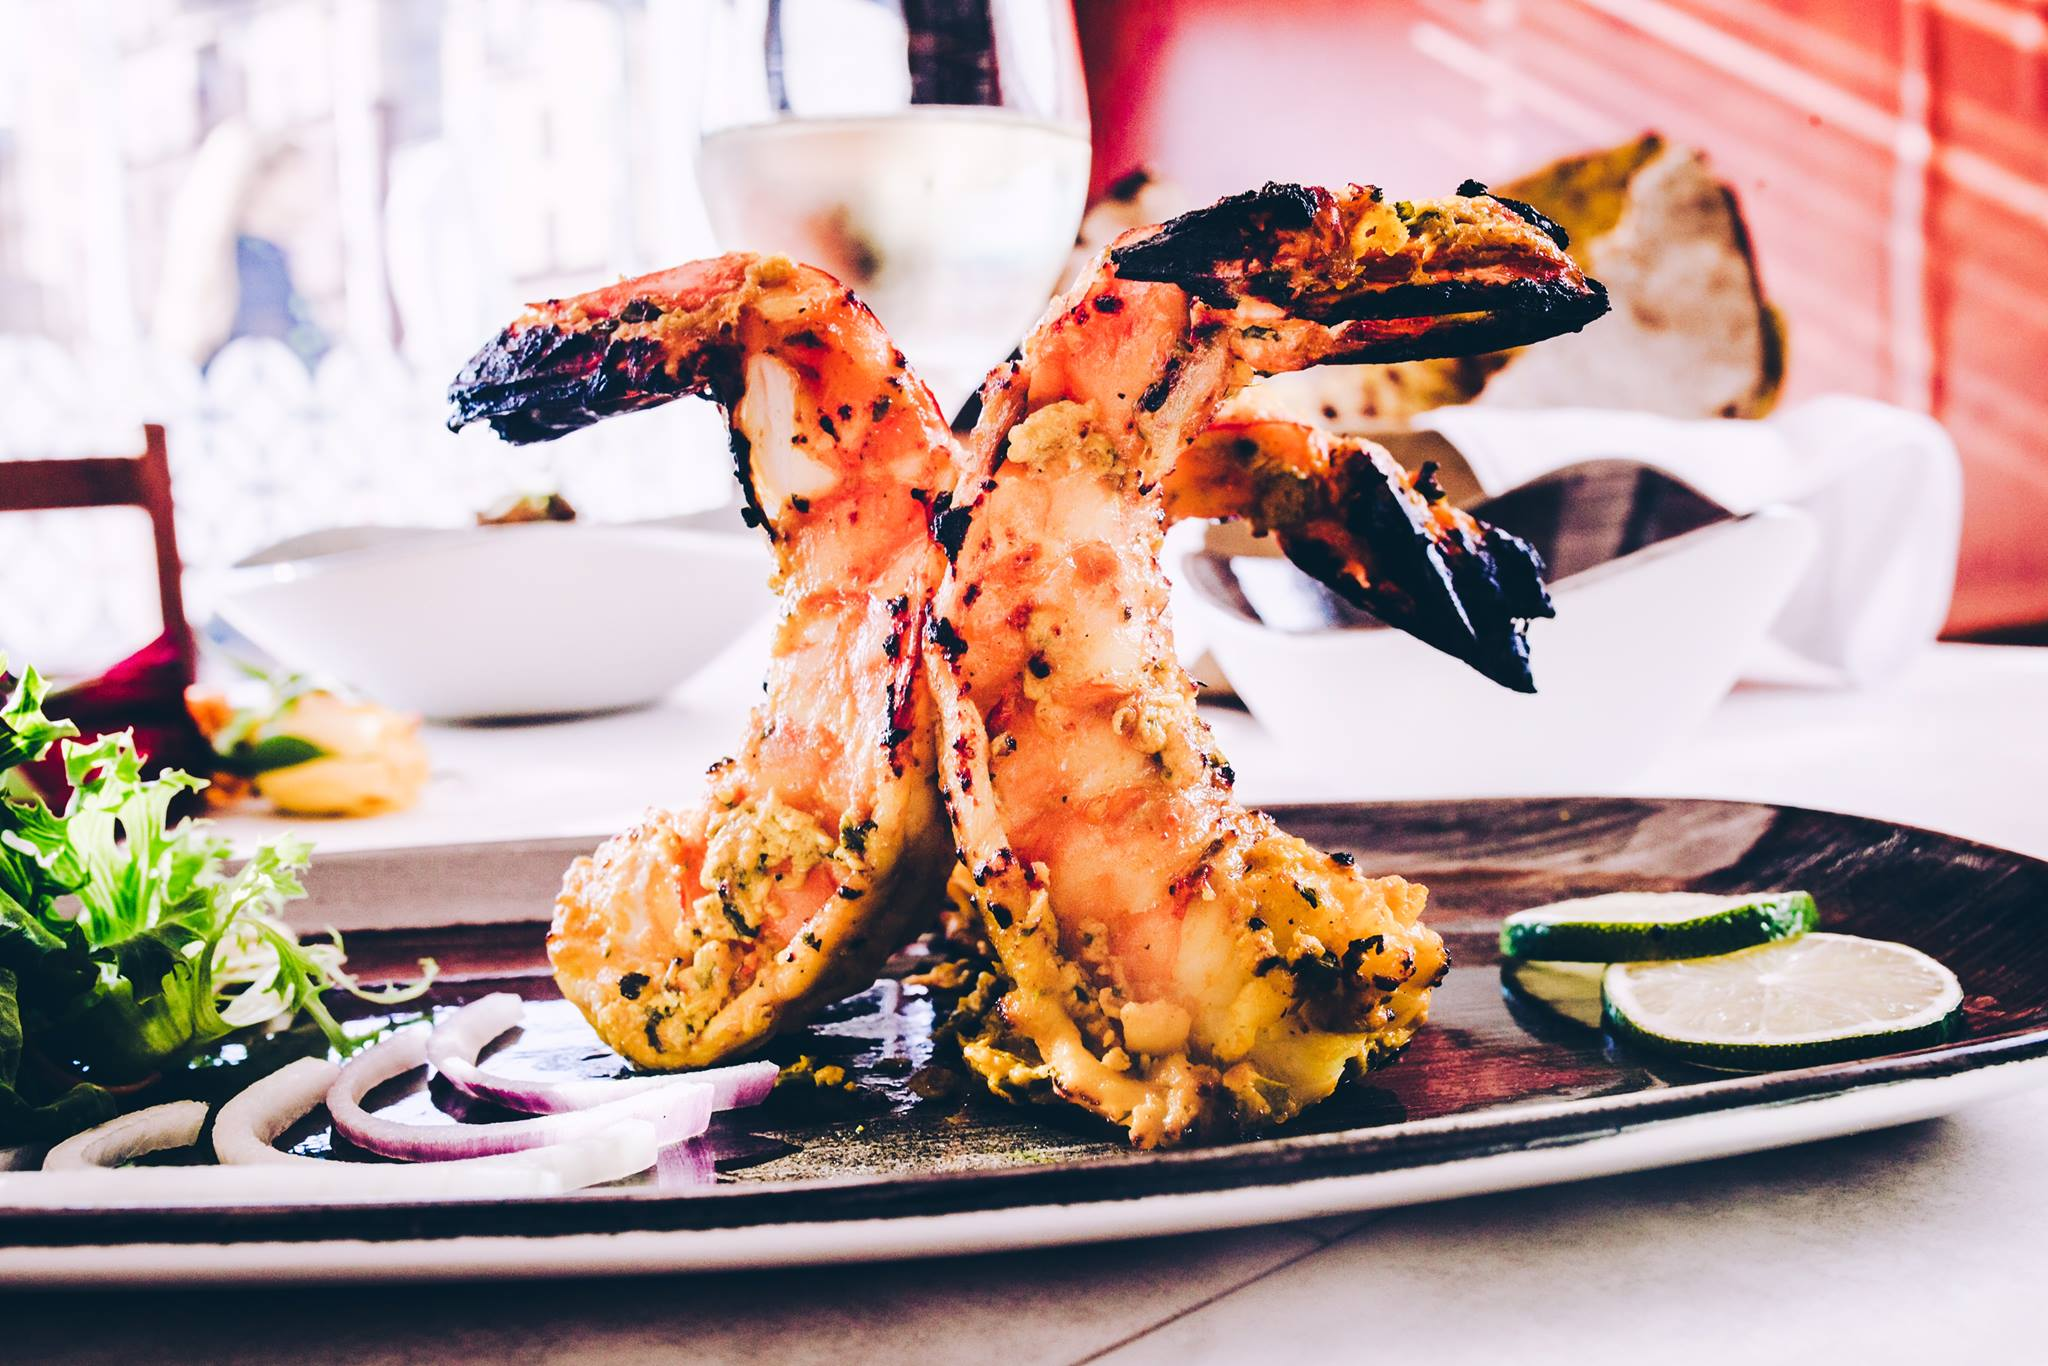 Grilled jumbo prawns plated at the Dhabba, one of the best restaurants Merchant City Glasgow.